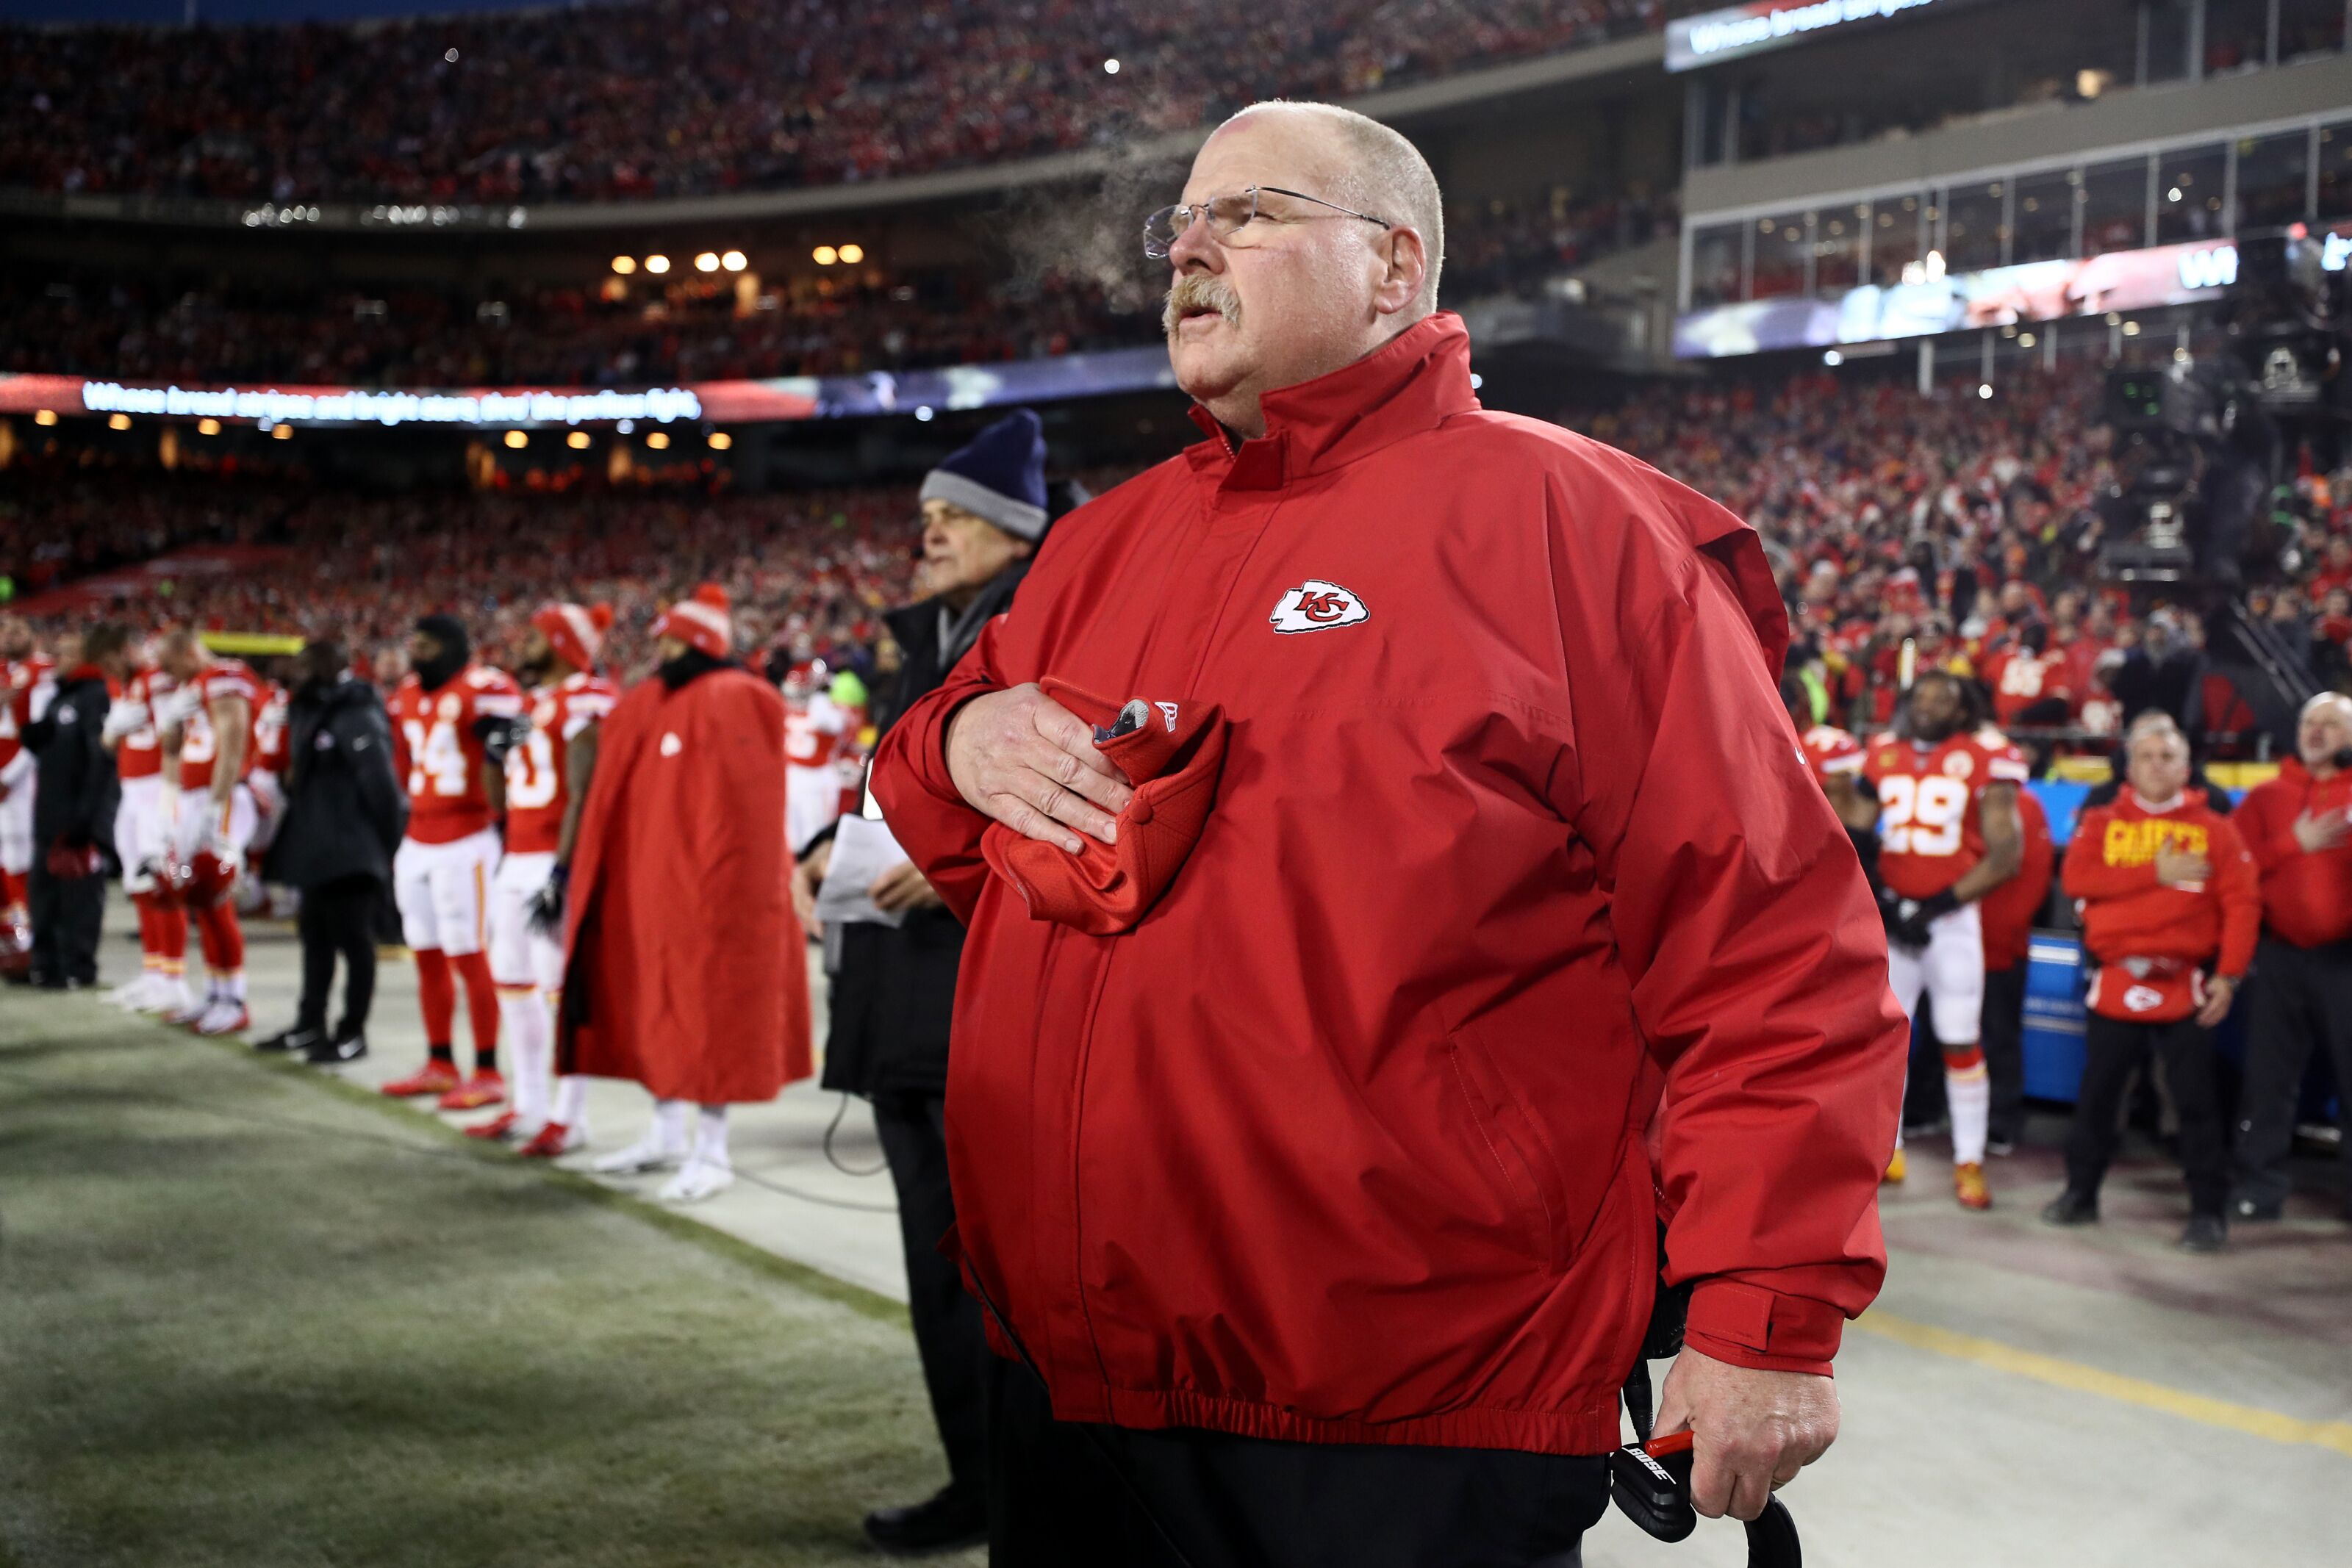 Chiefs vs. Steelers will be among televised preseason games